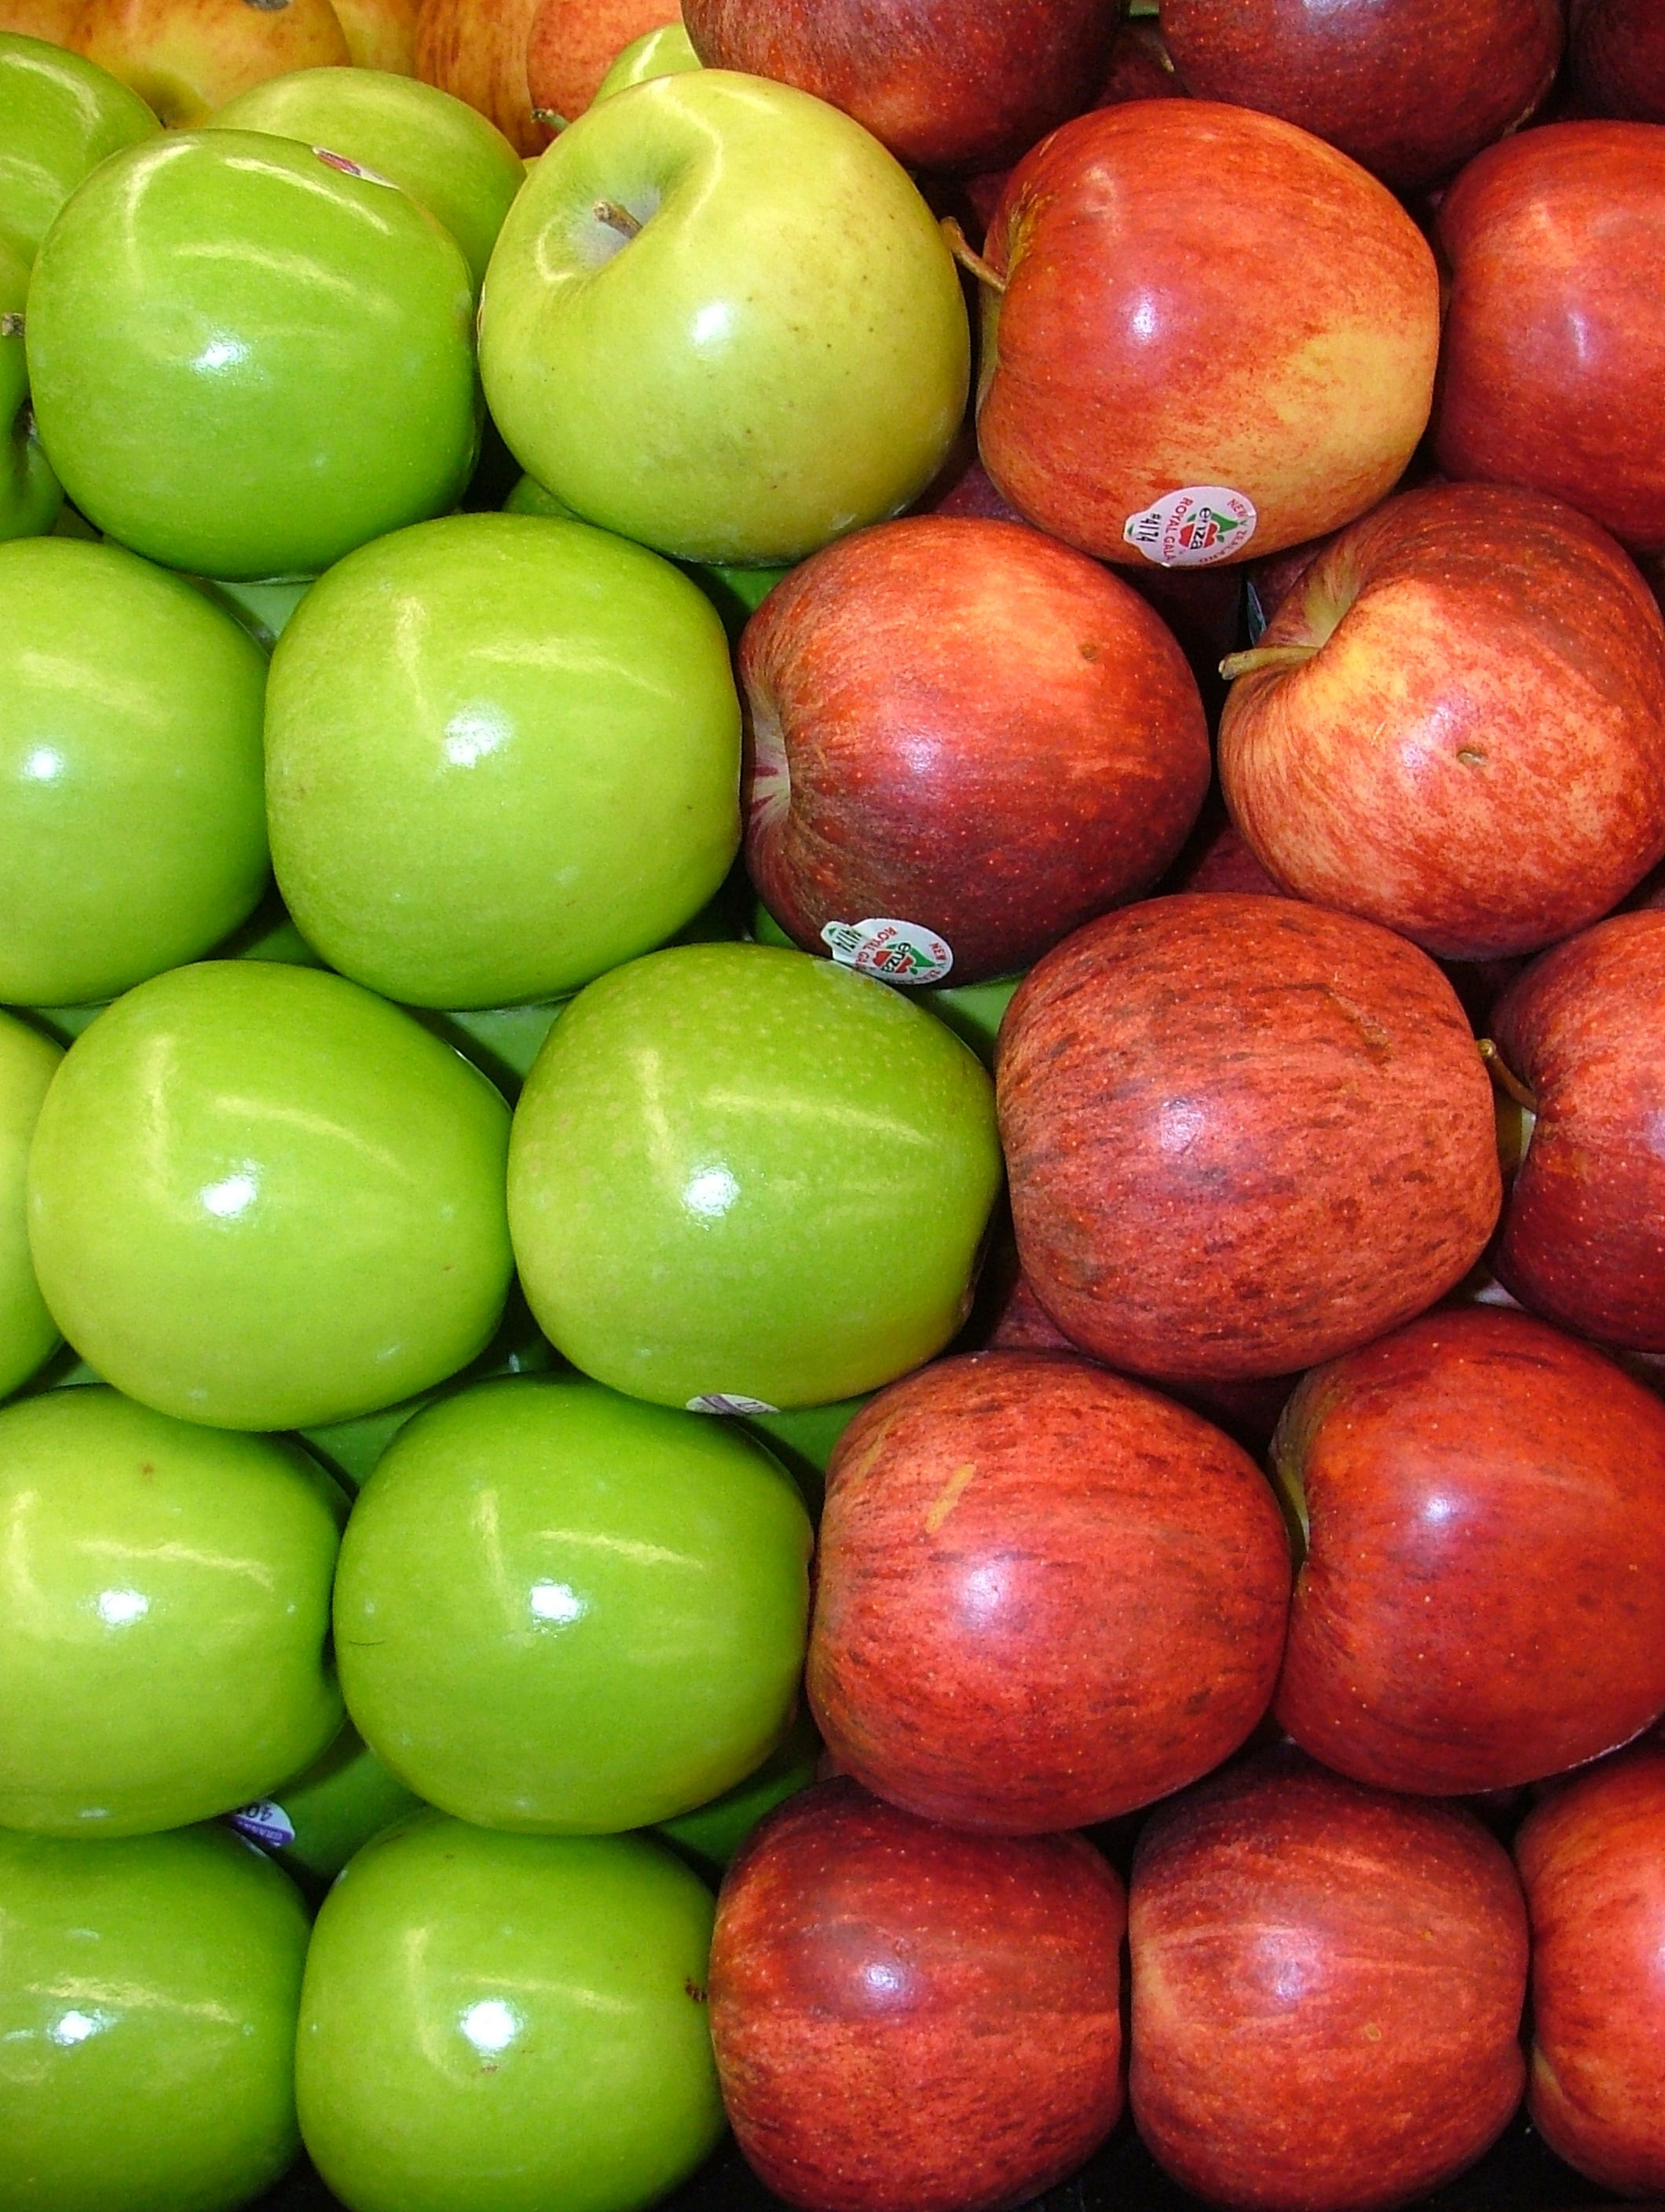 Types of Green Apple's http://commons.wikimedia.org/wiki/File:Assorted_Red_and_Green_Apples_2120px.jpg